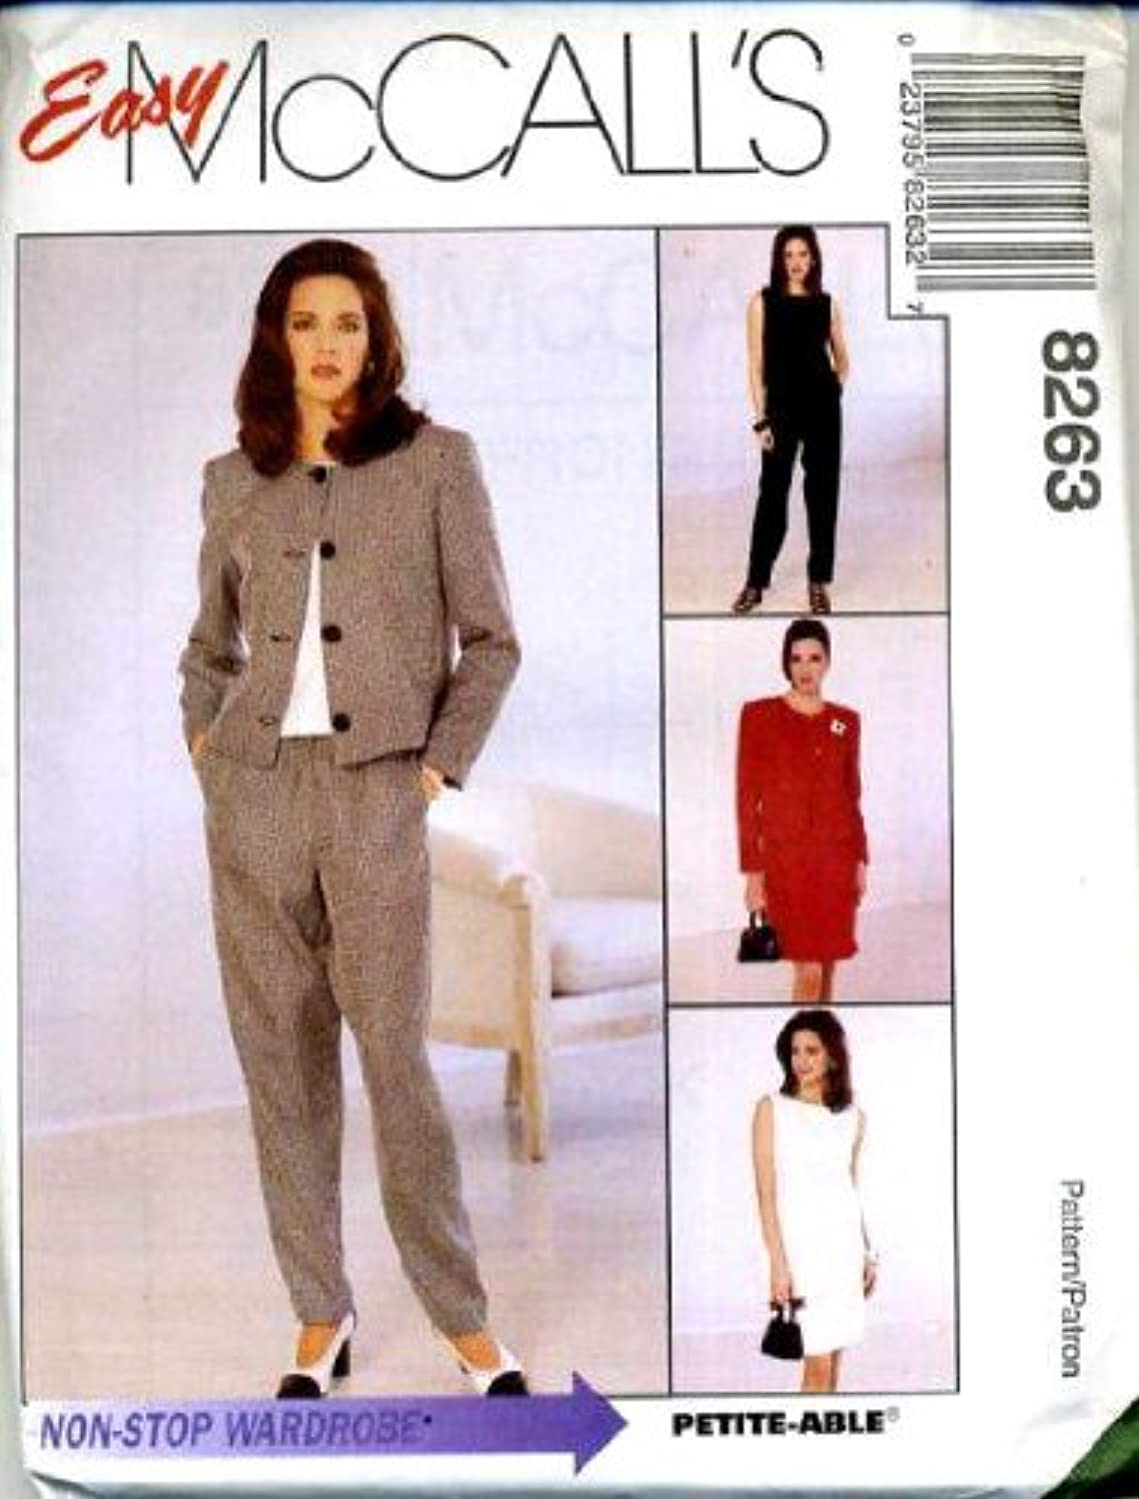 McCall's Sewing Pattern 8263 Misses' Lined Jacket, Dress or Top, Pull-on Pants & Skirt, F (Size 16 18 20)